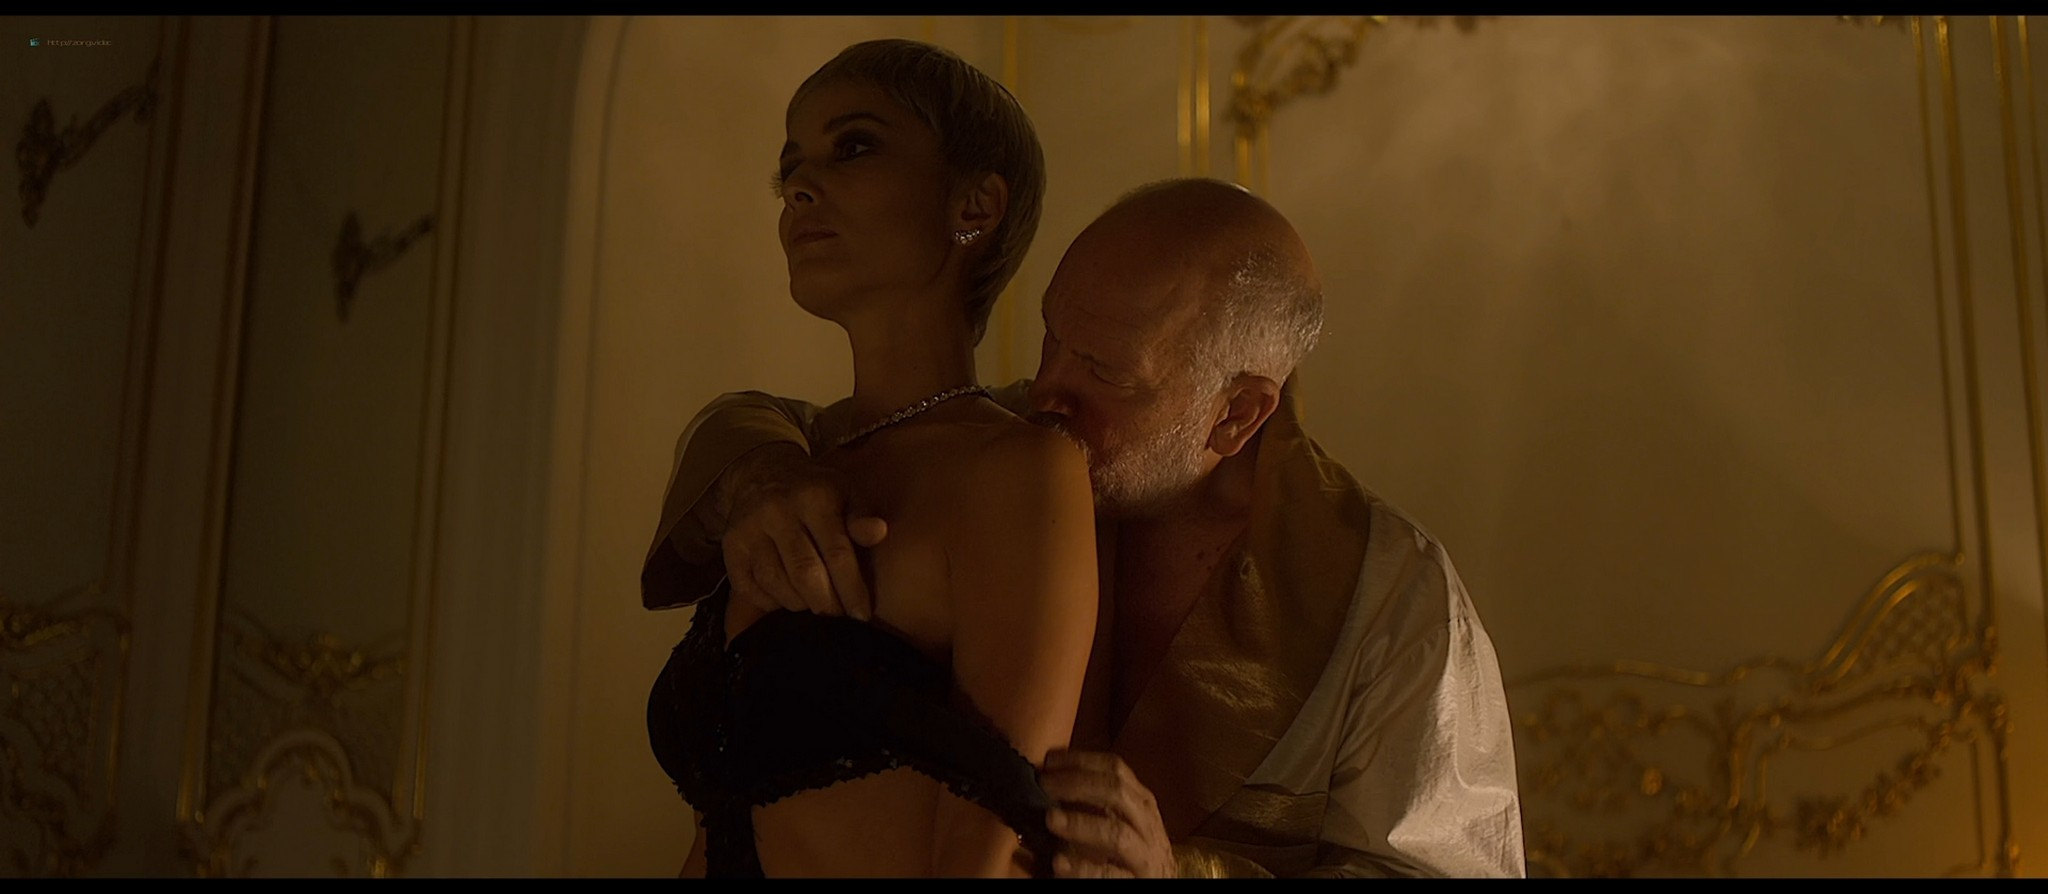 Bérénice Marlohe nude Jaime Ray Newman sexy Owee Rae butt naked - Valley of the Gods (2019) HD 1080p BluRay (14)